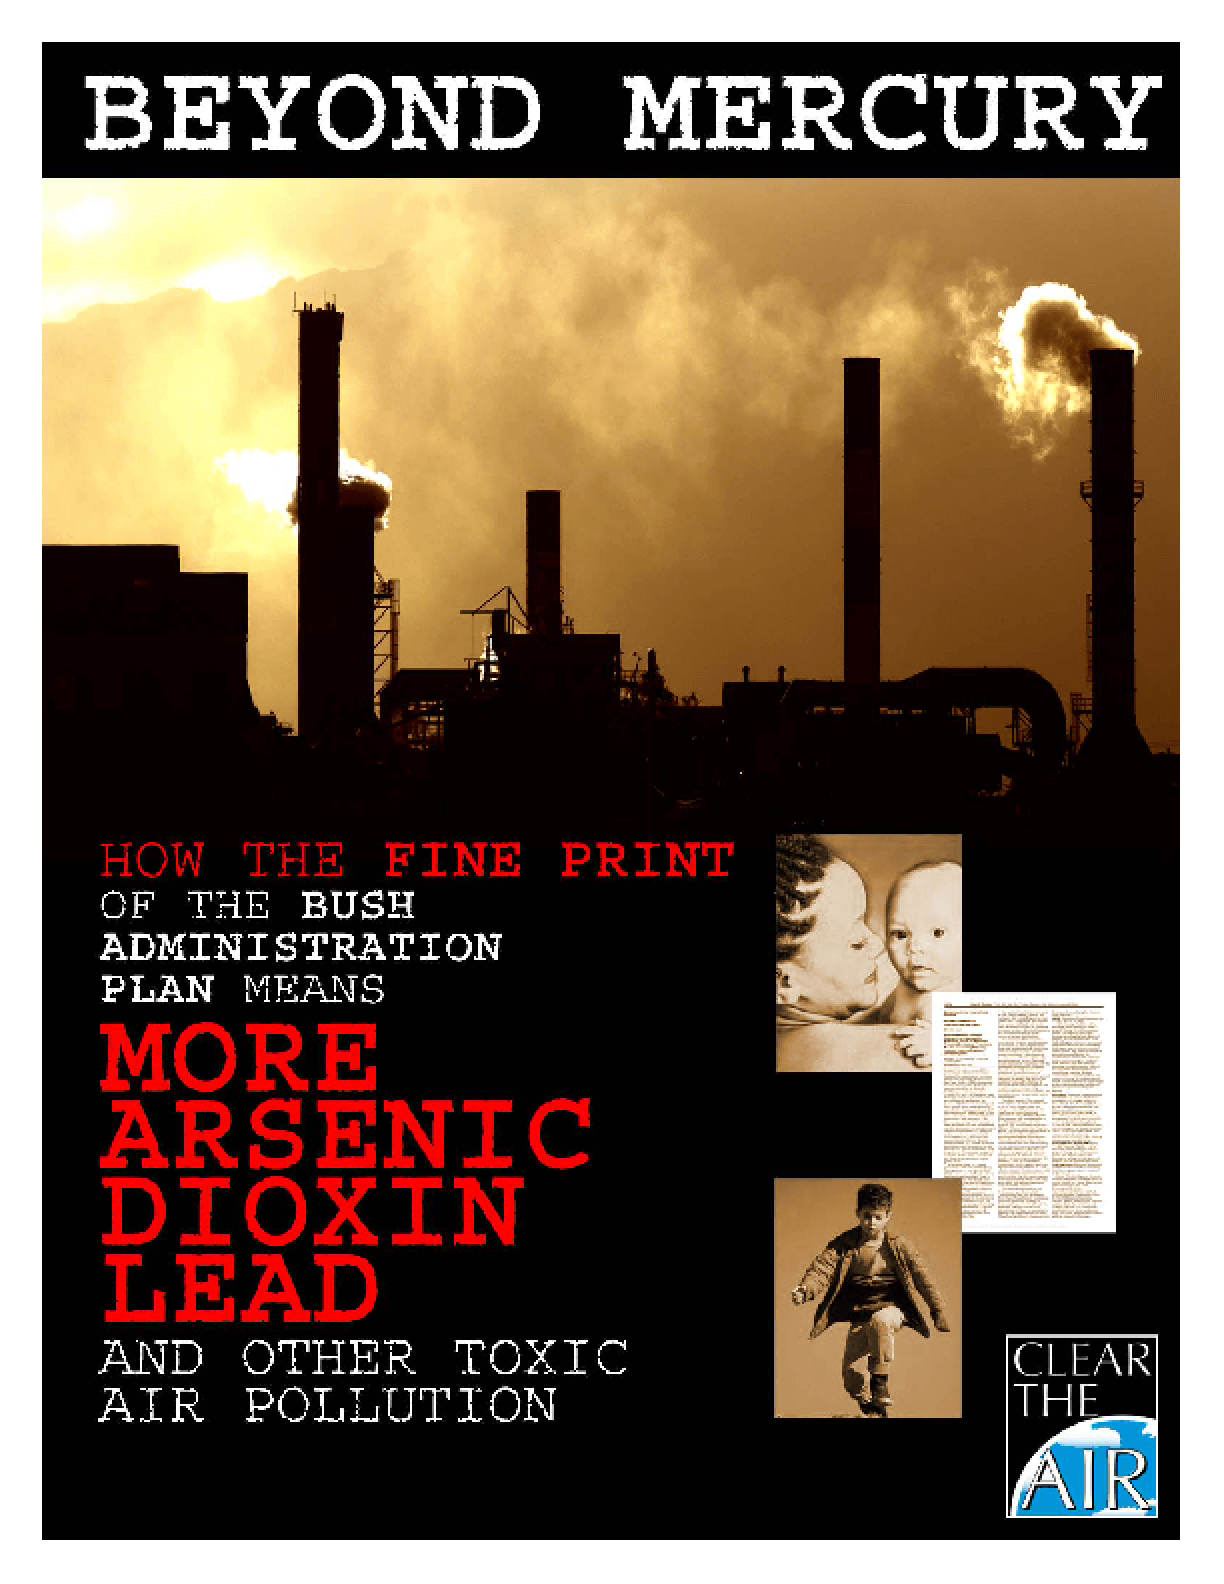 Beyond Mercury: How the Fine Print of the Bush Administration Plan Means More Dioxin, Lead and Other Toxic Air Pollution